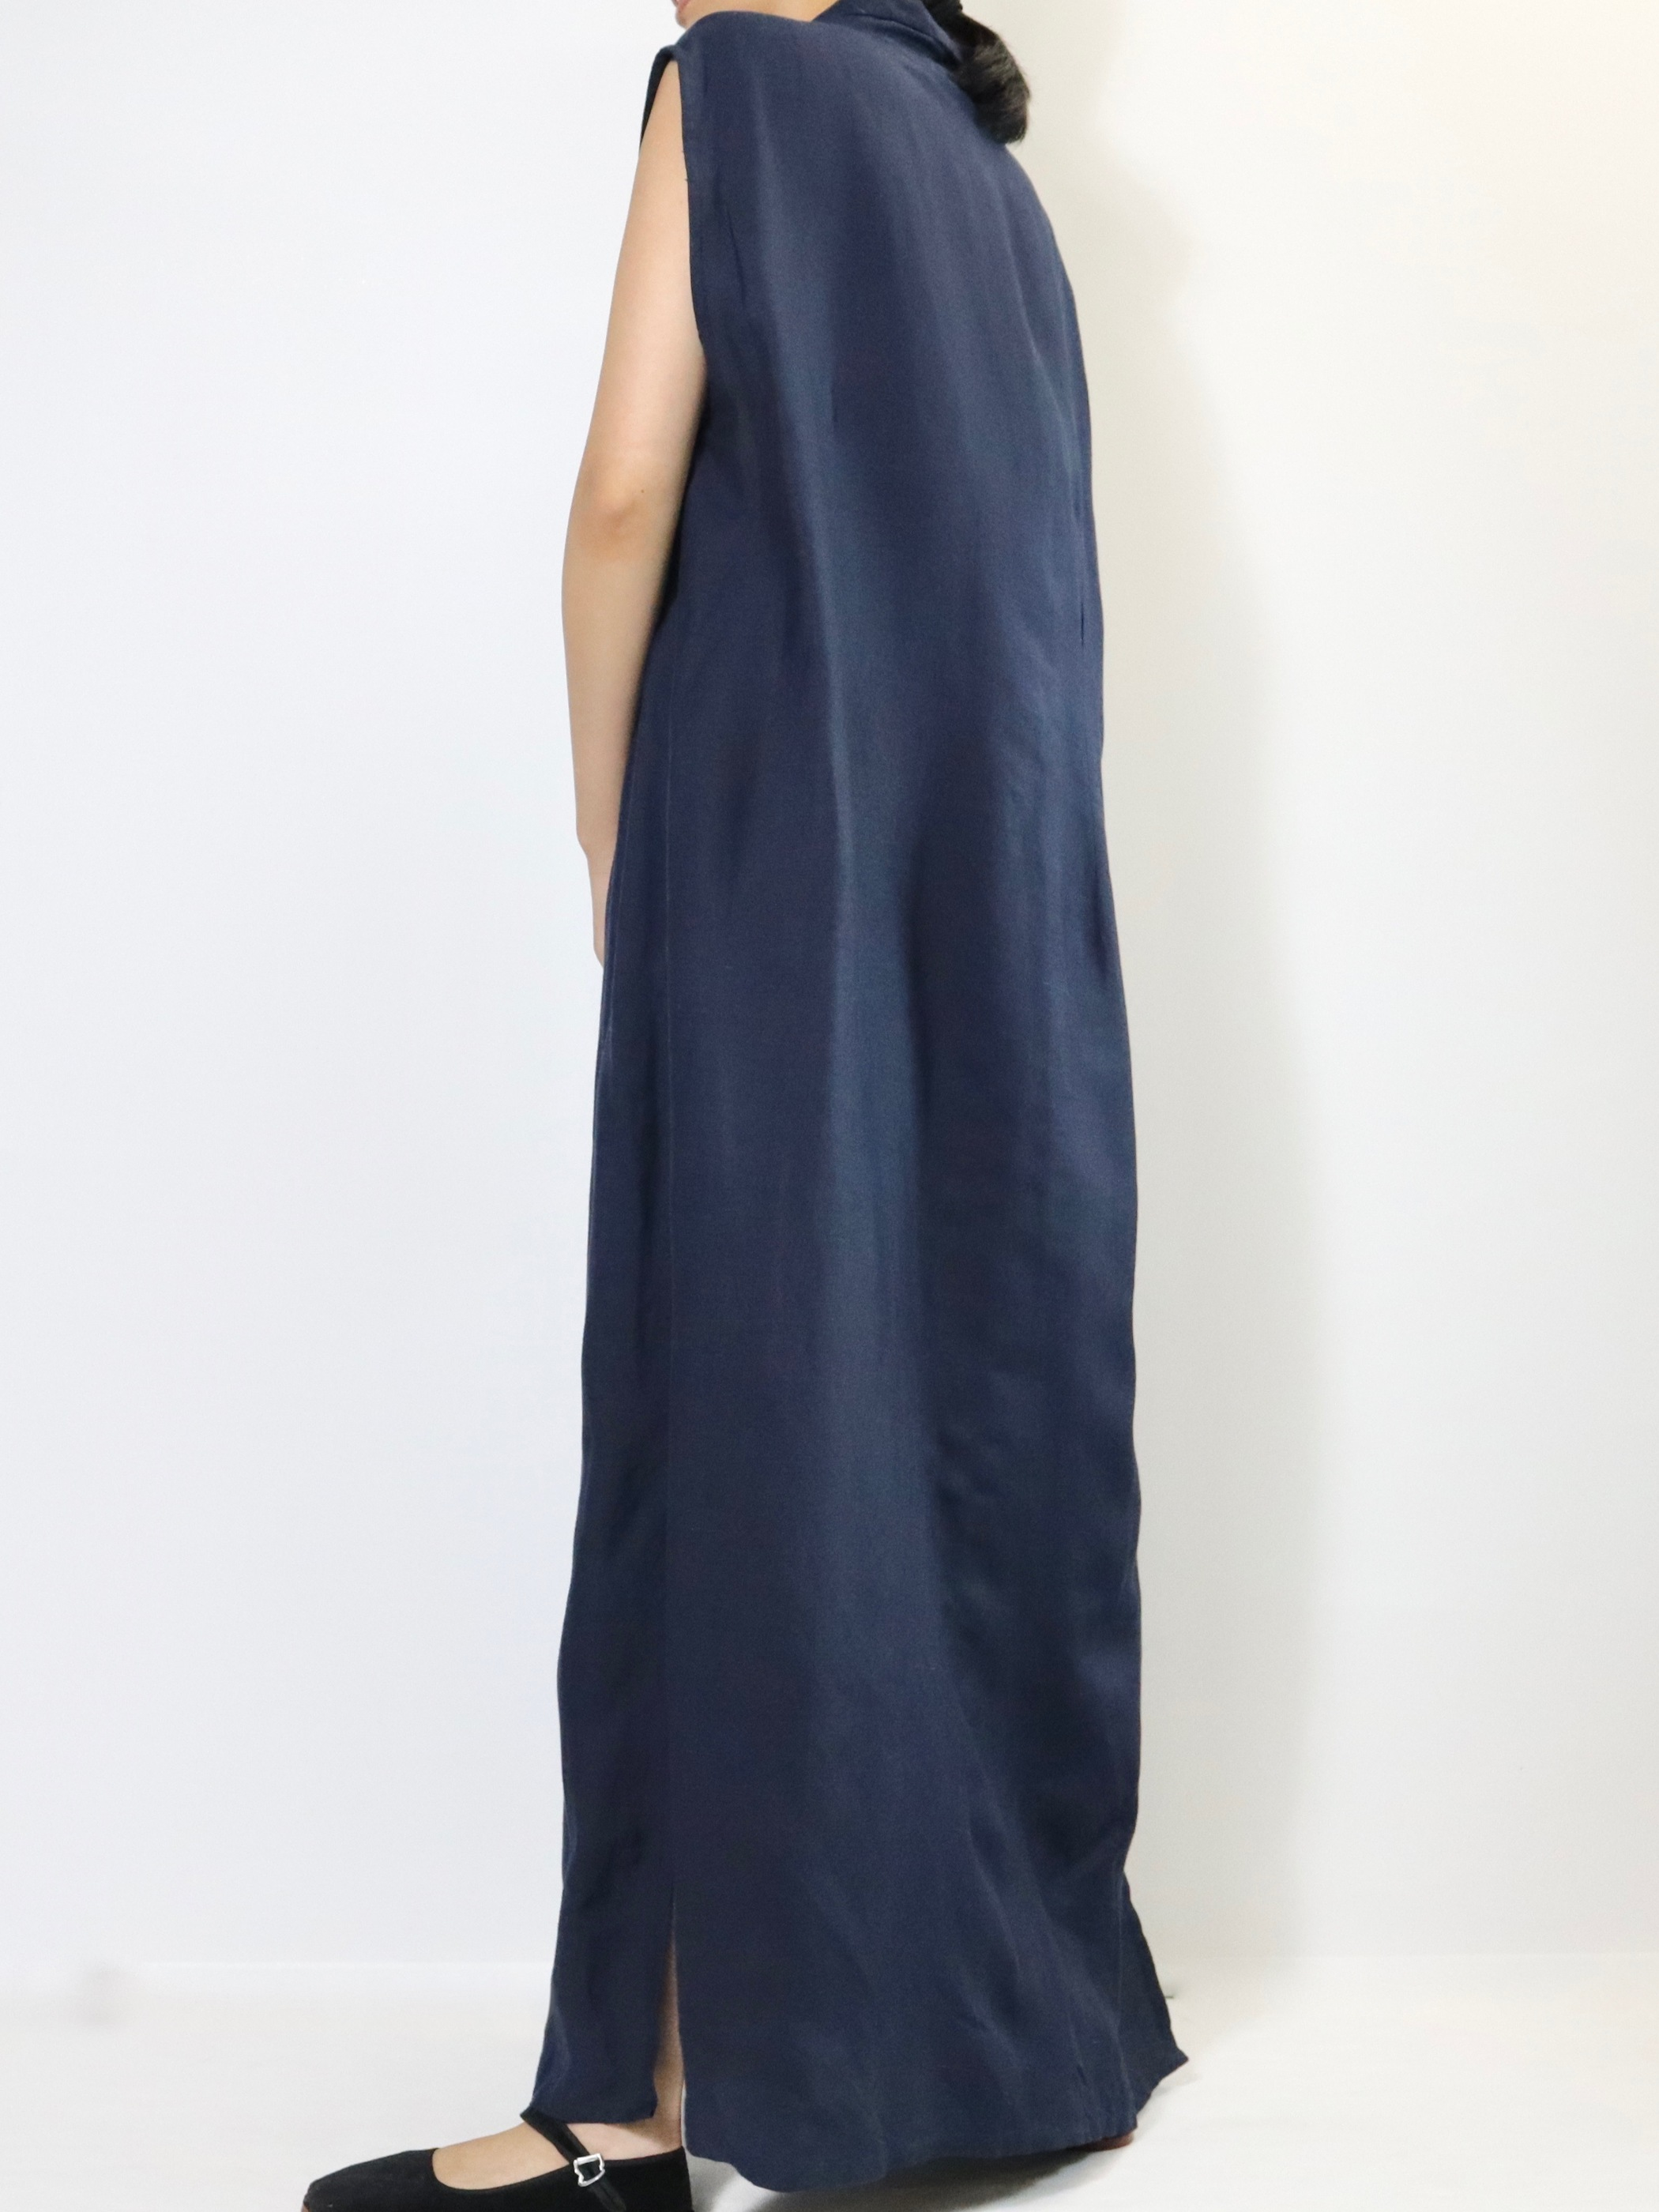 【MARKET】Open collar long one-piece